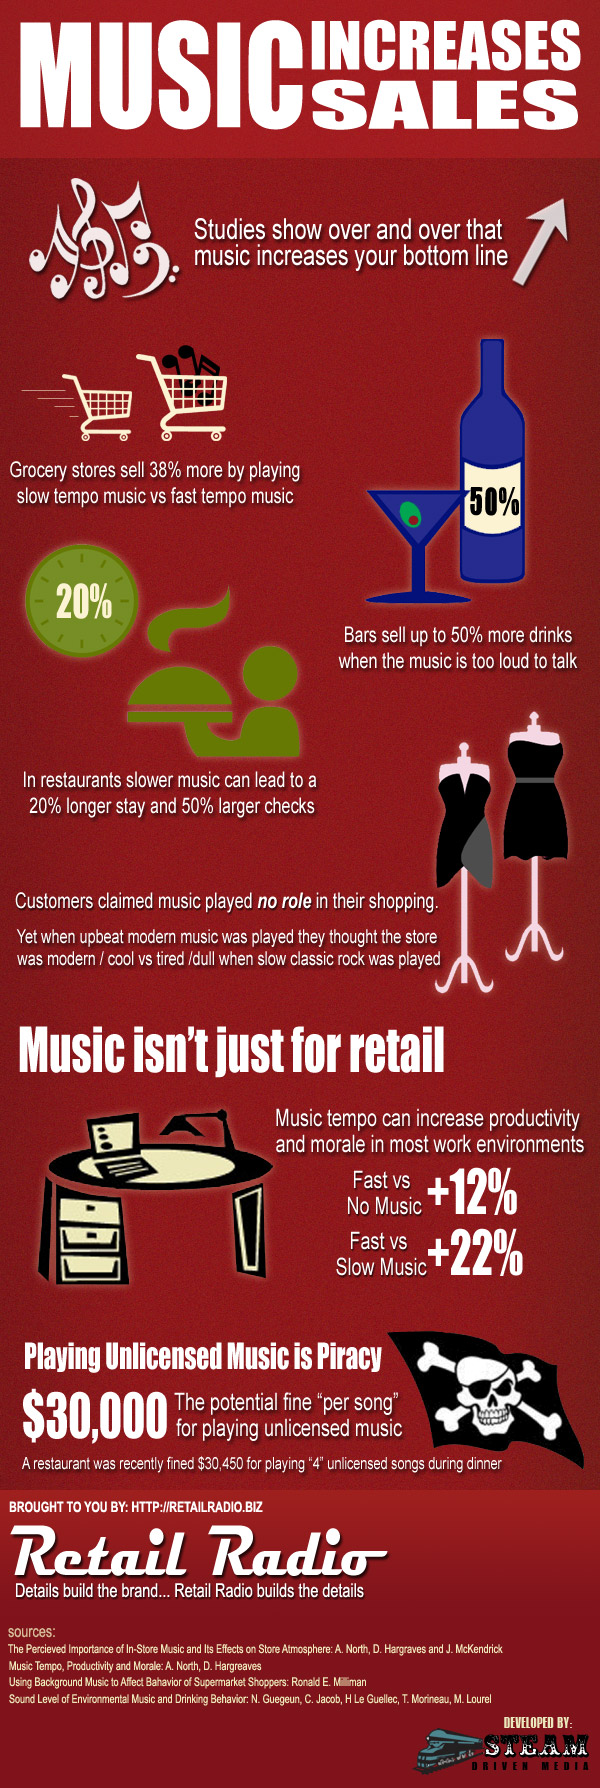 music-increases-sales-infographic